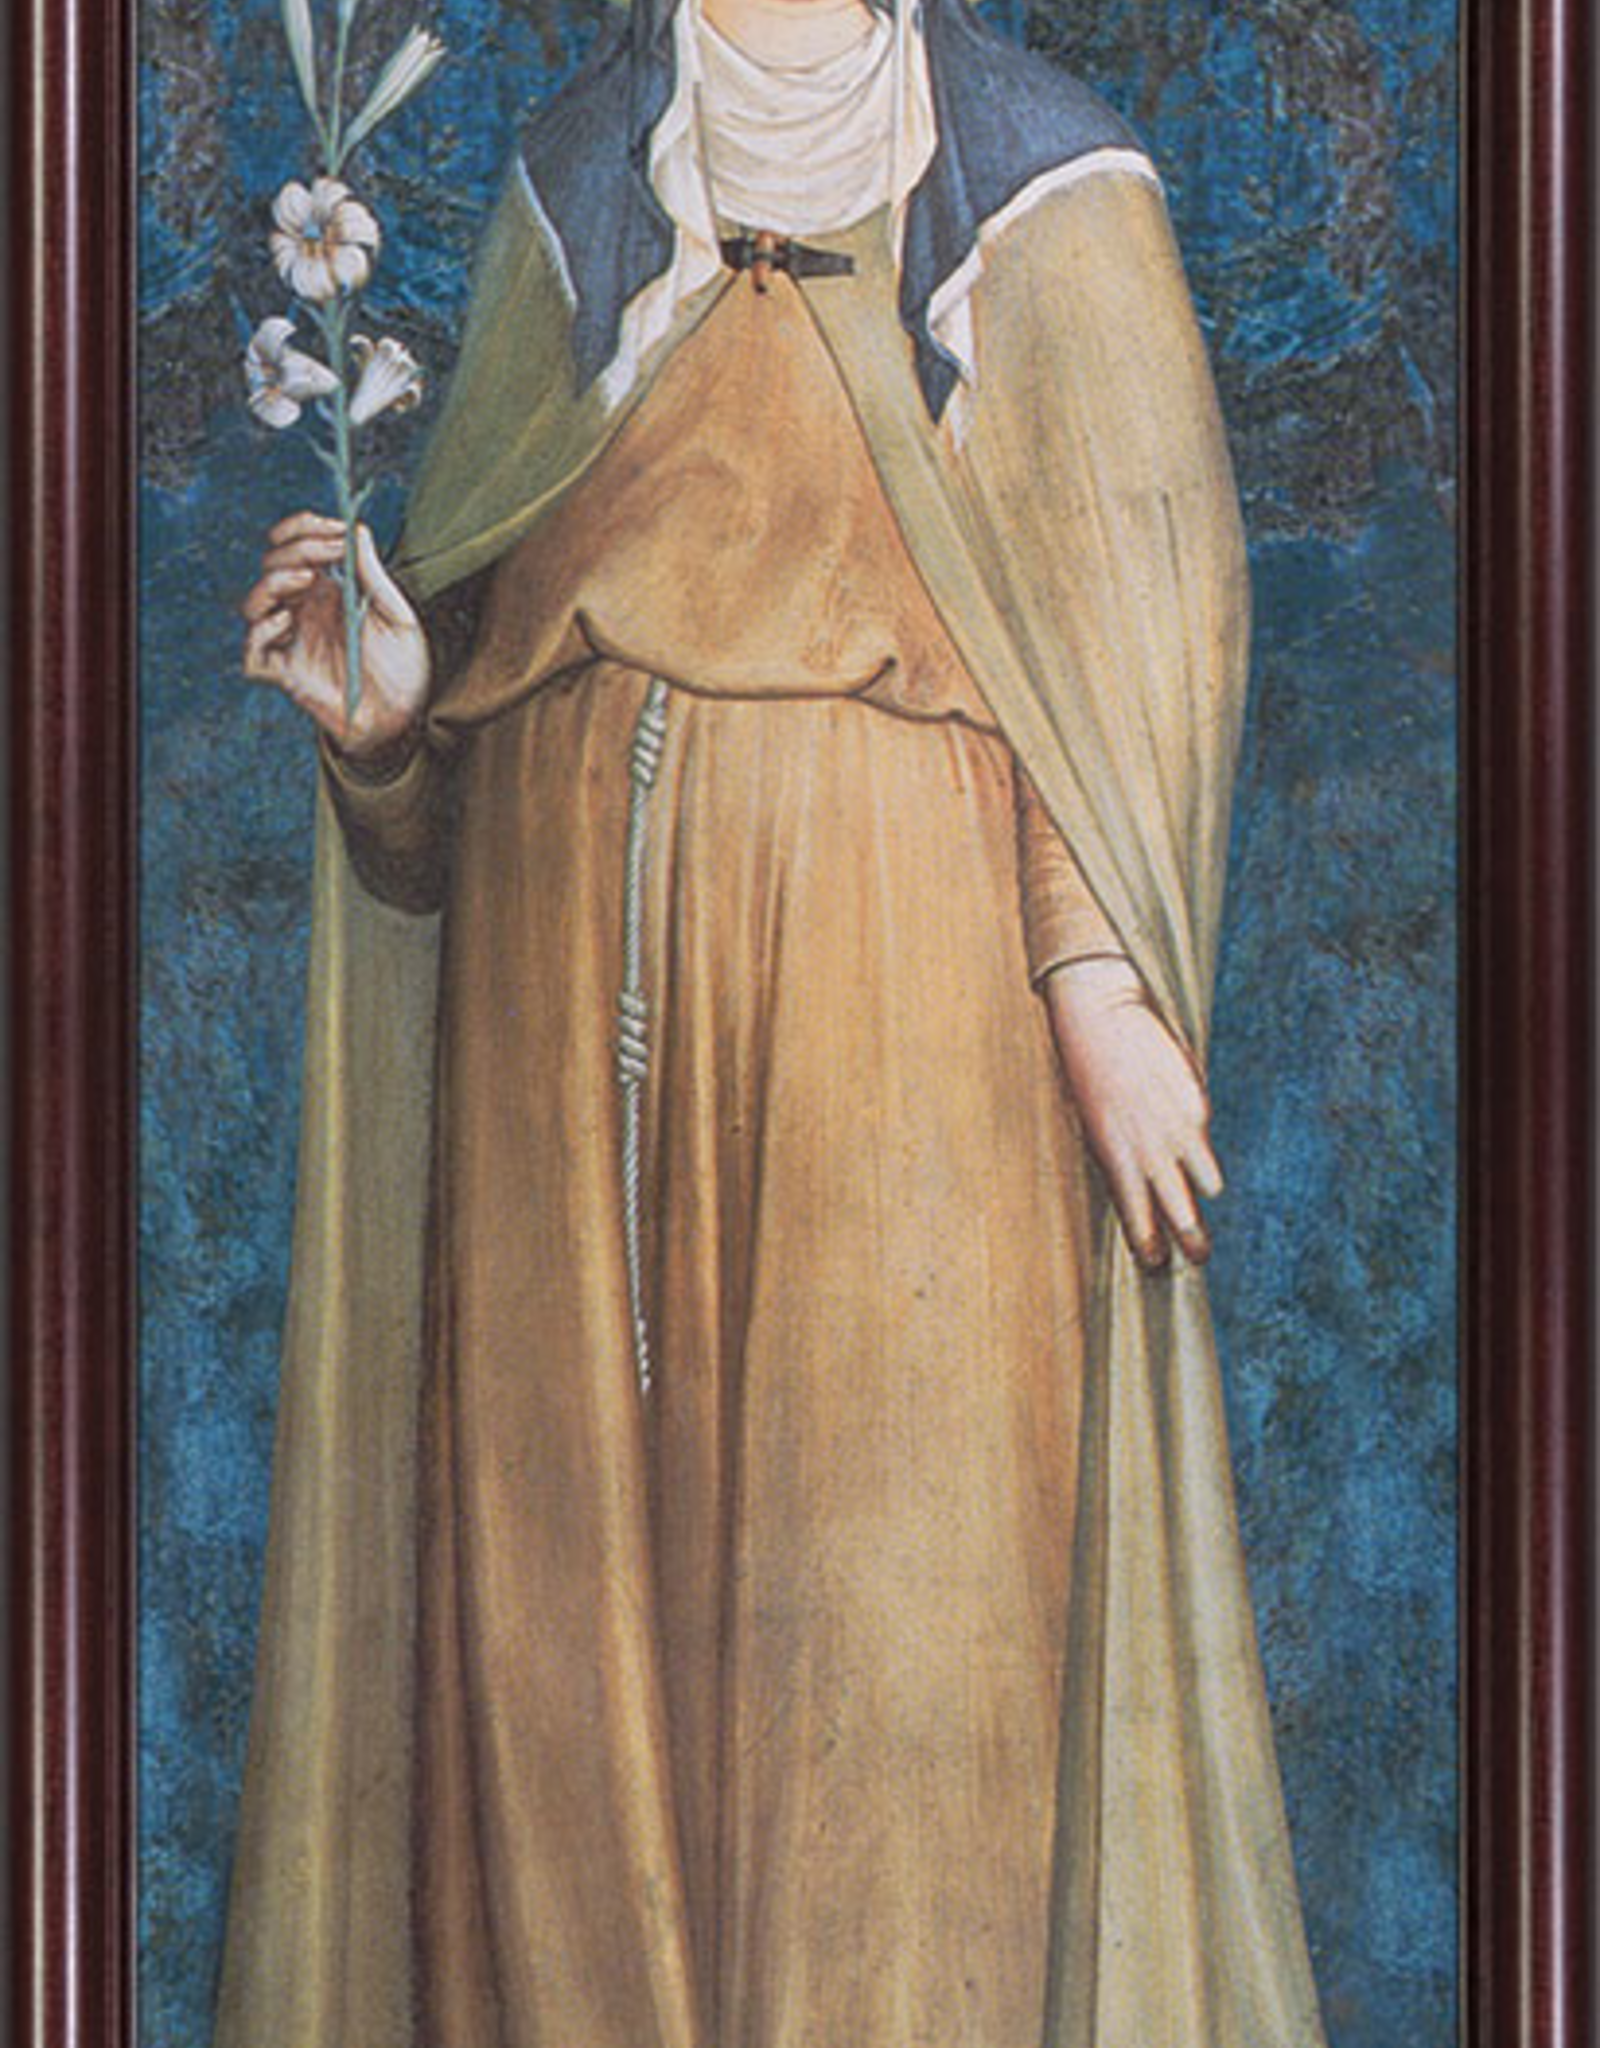 Nelson/Catholic to the Max St. Clare Full Length Framed Image in Cherry Frame 6.5 x 16""